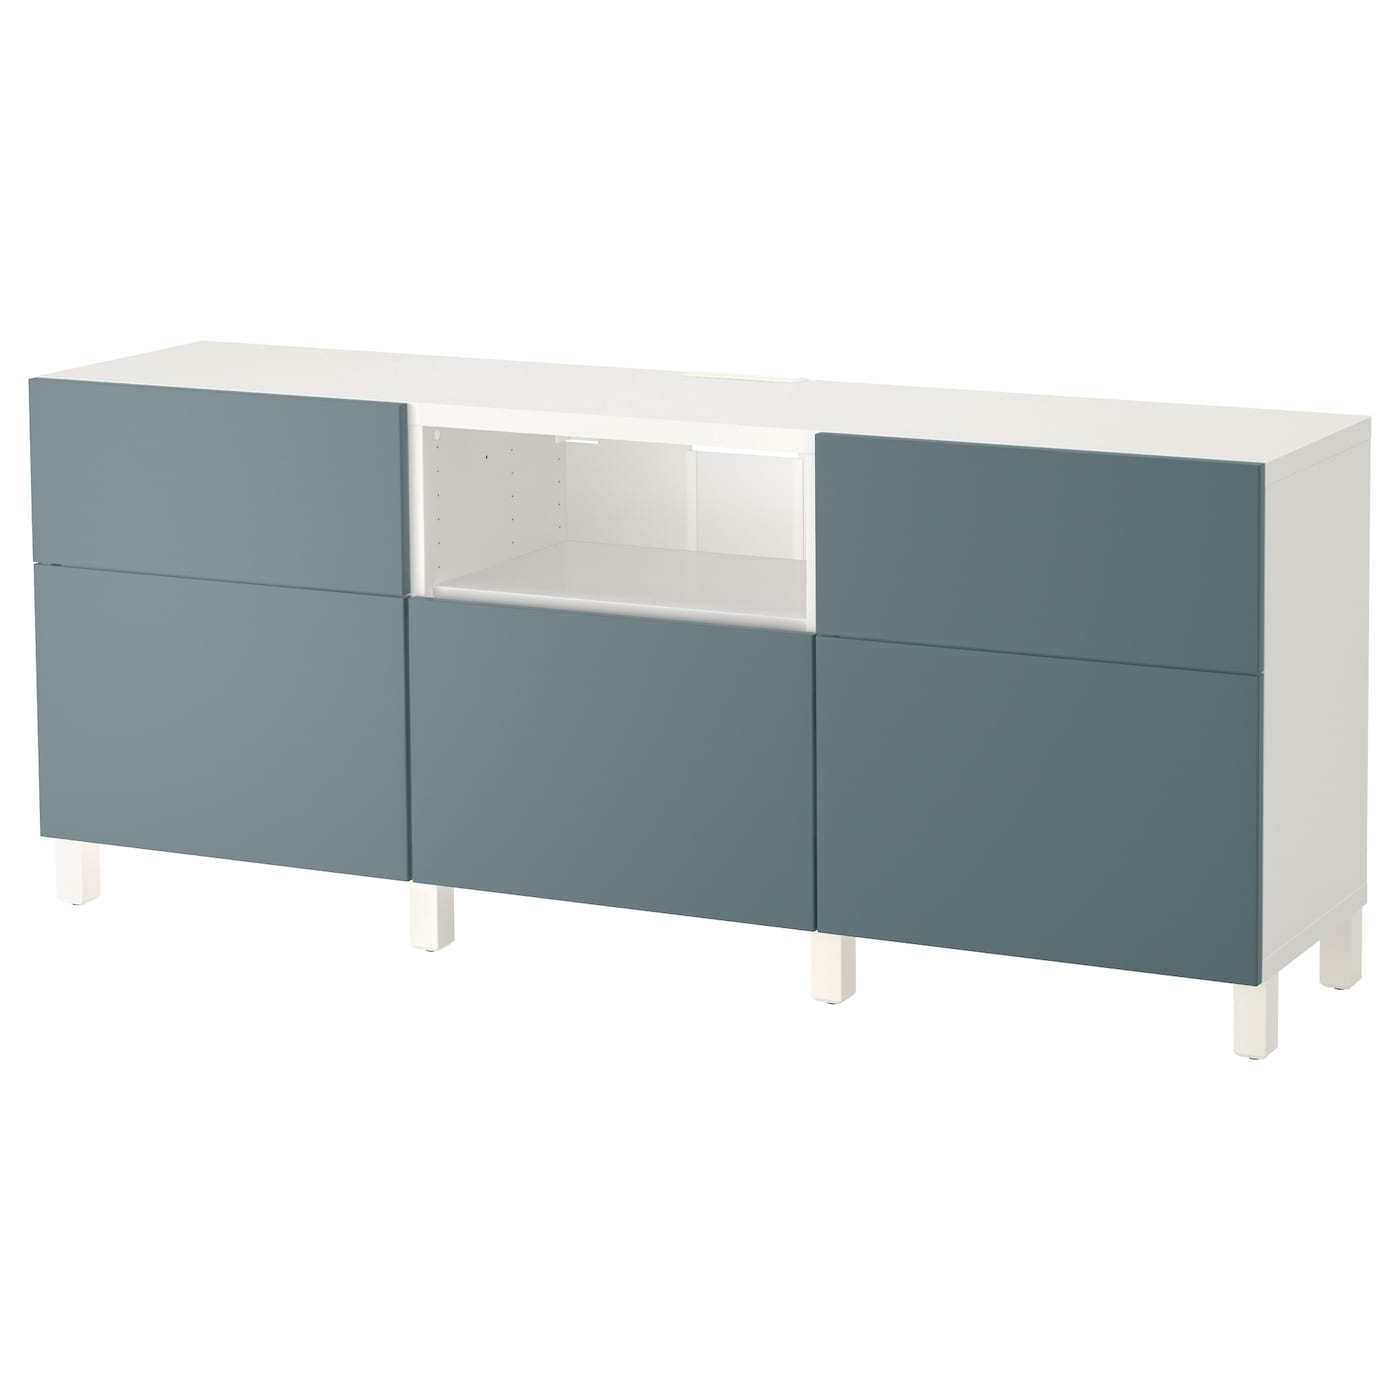 Ikea Tv Table Design Decoration # Meuble Tv Ferme Ikea